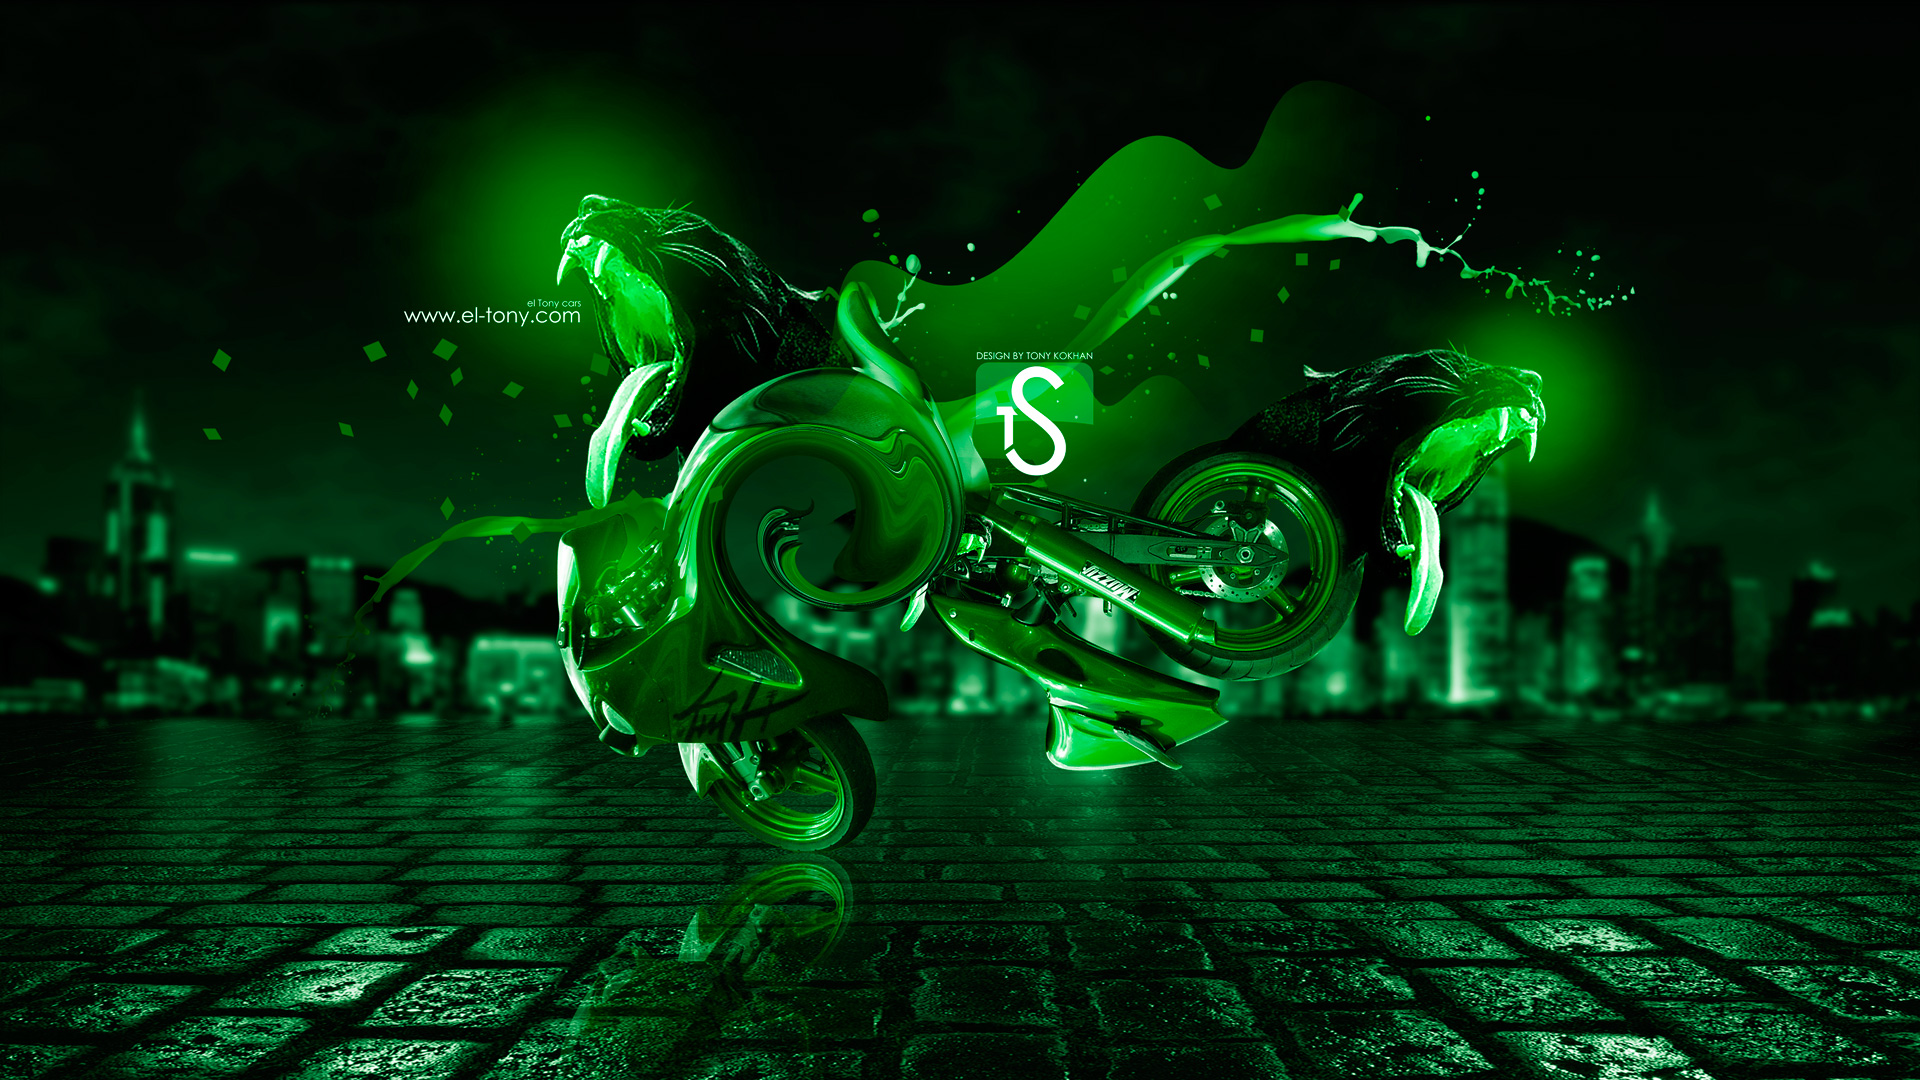 neon flame motorcycle wallpaper - photo #17